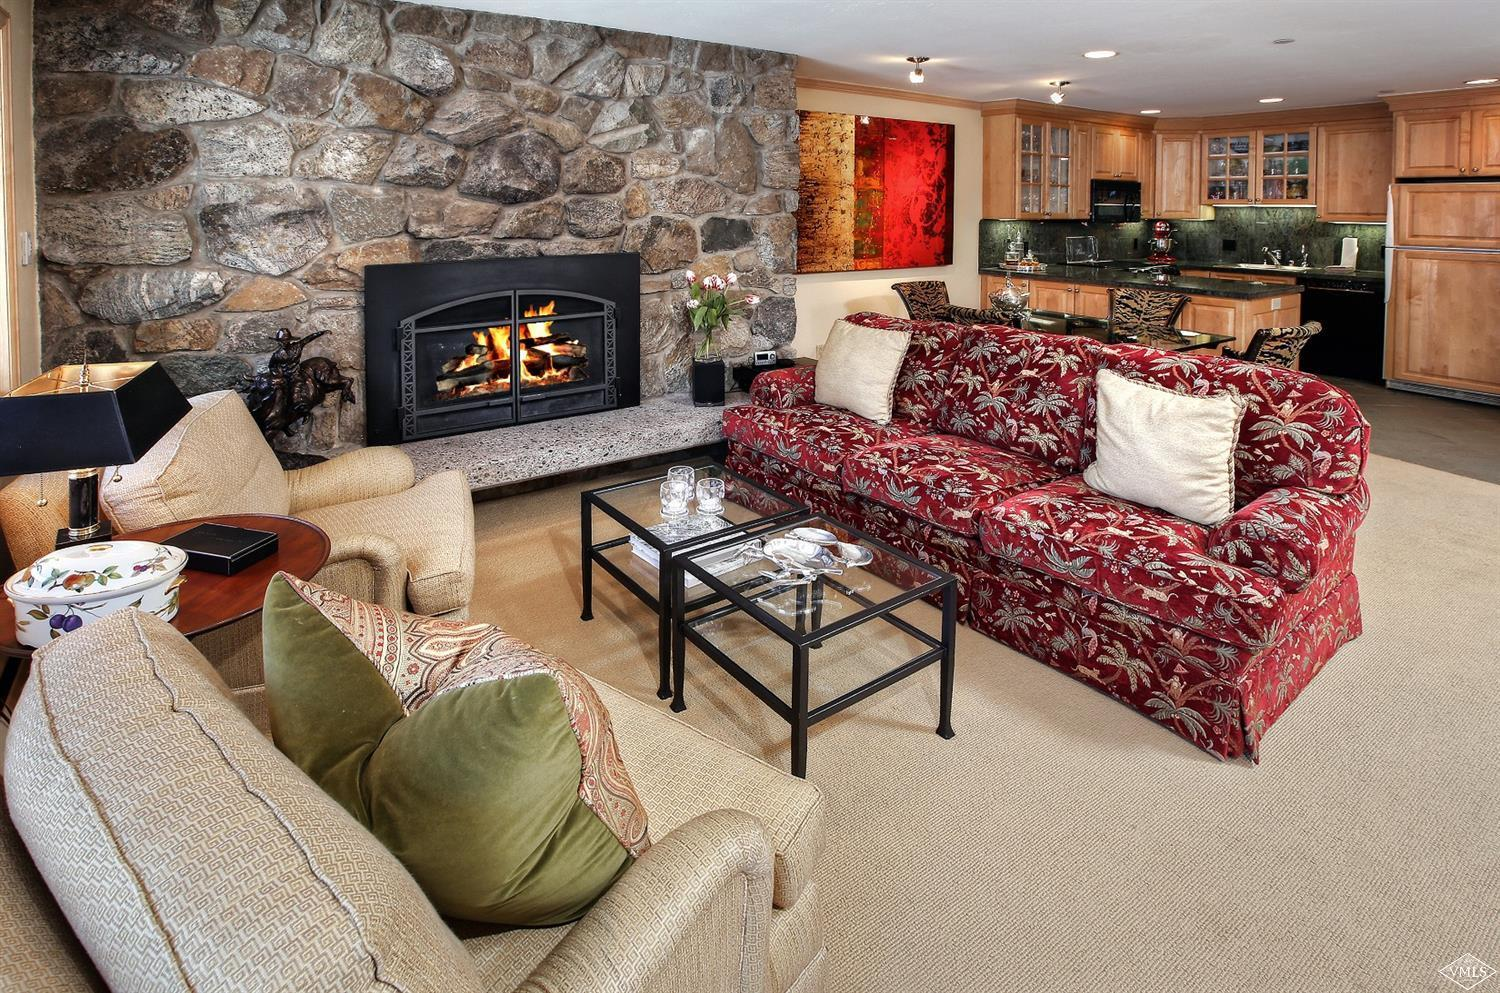 595 Vail Valley Drive, C-233, Vail, CO 81657 Property Photo